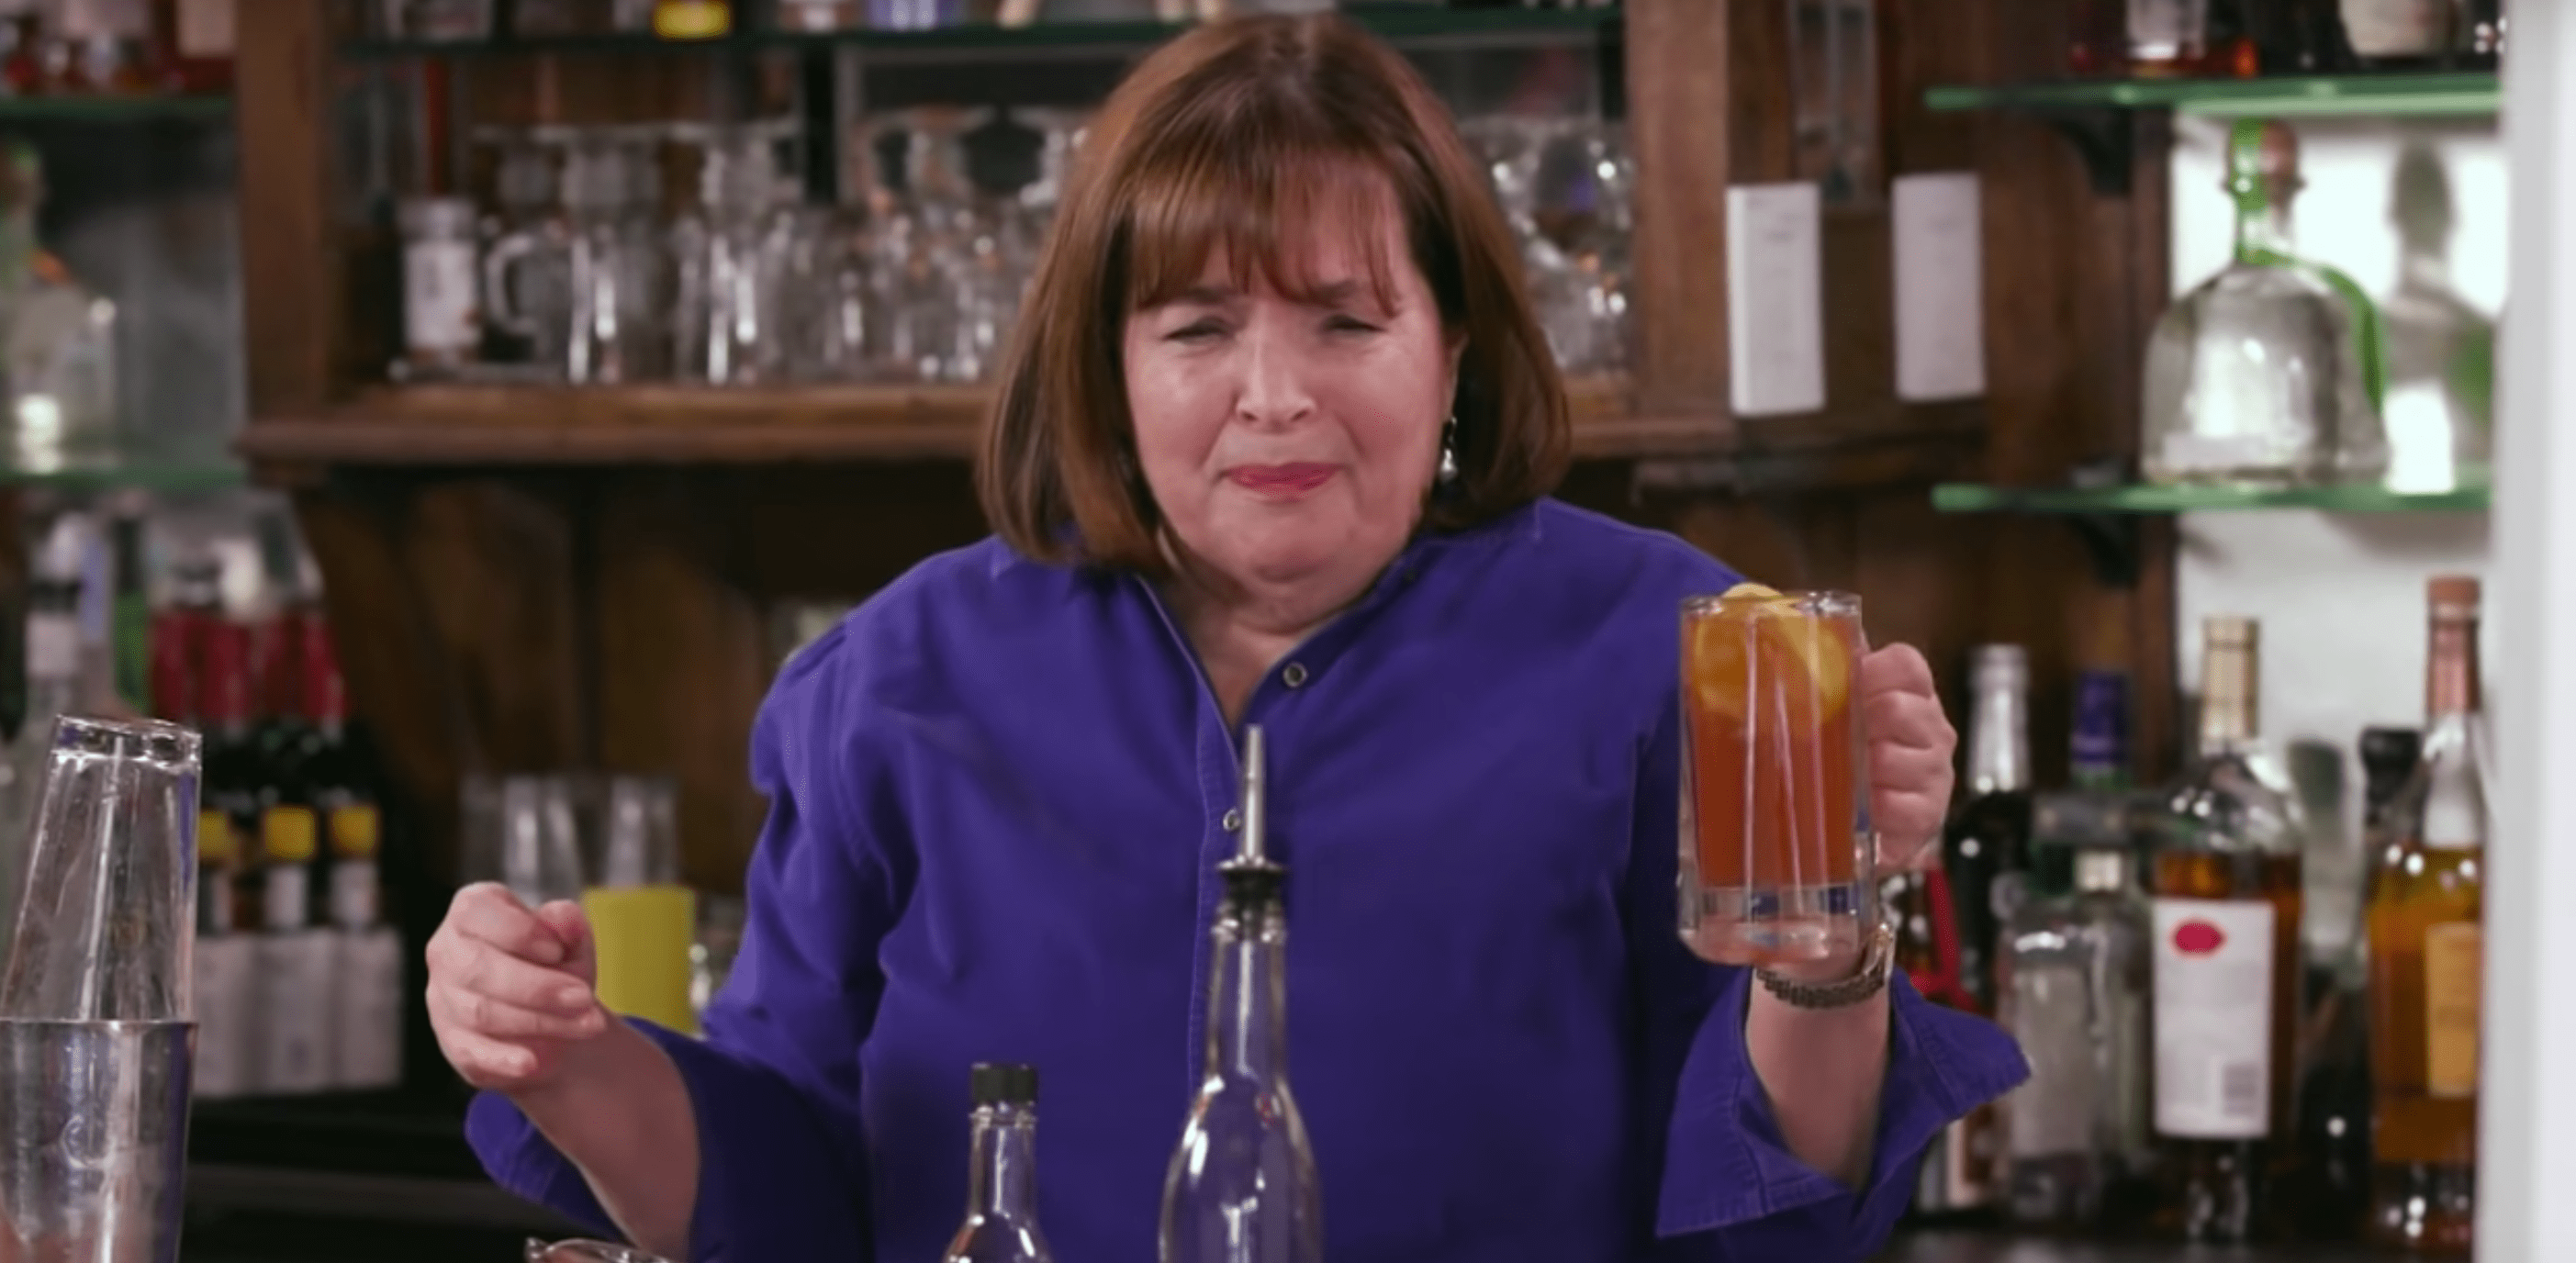 Ina Garten Bars Watch Seth Meyers And Ina Garten Get Extremely Drunk Together In